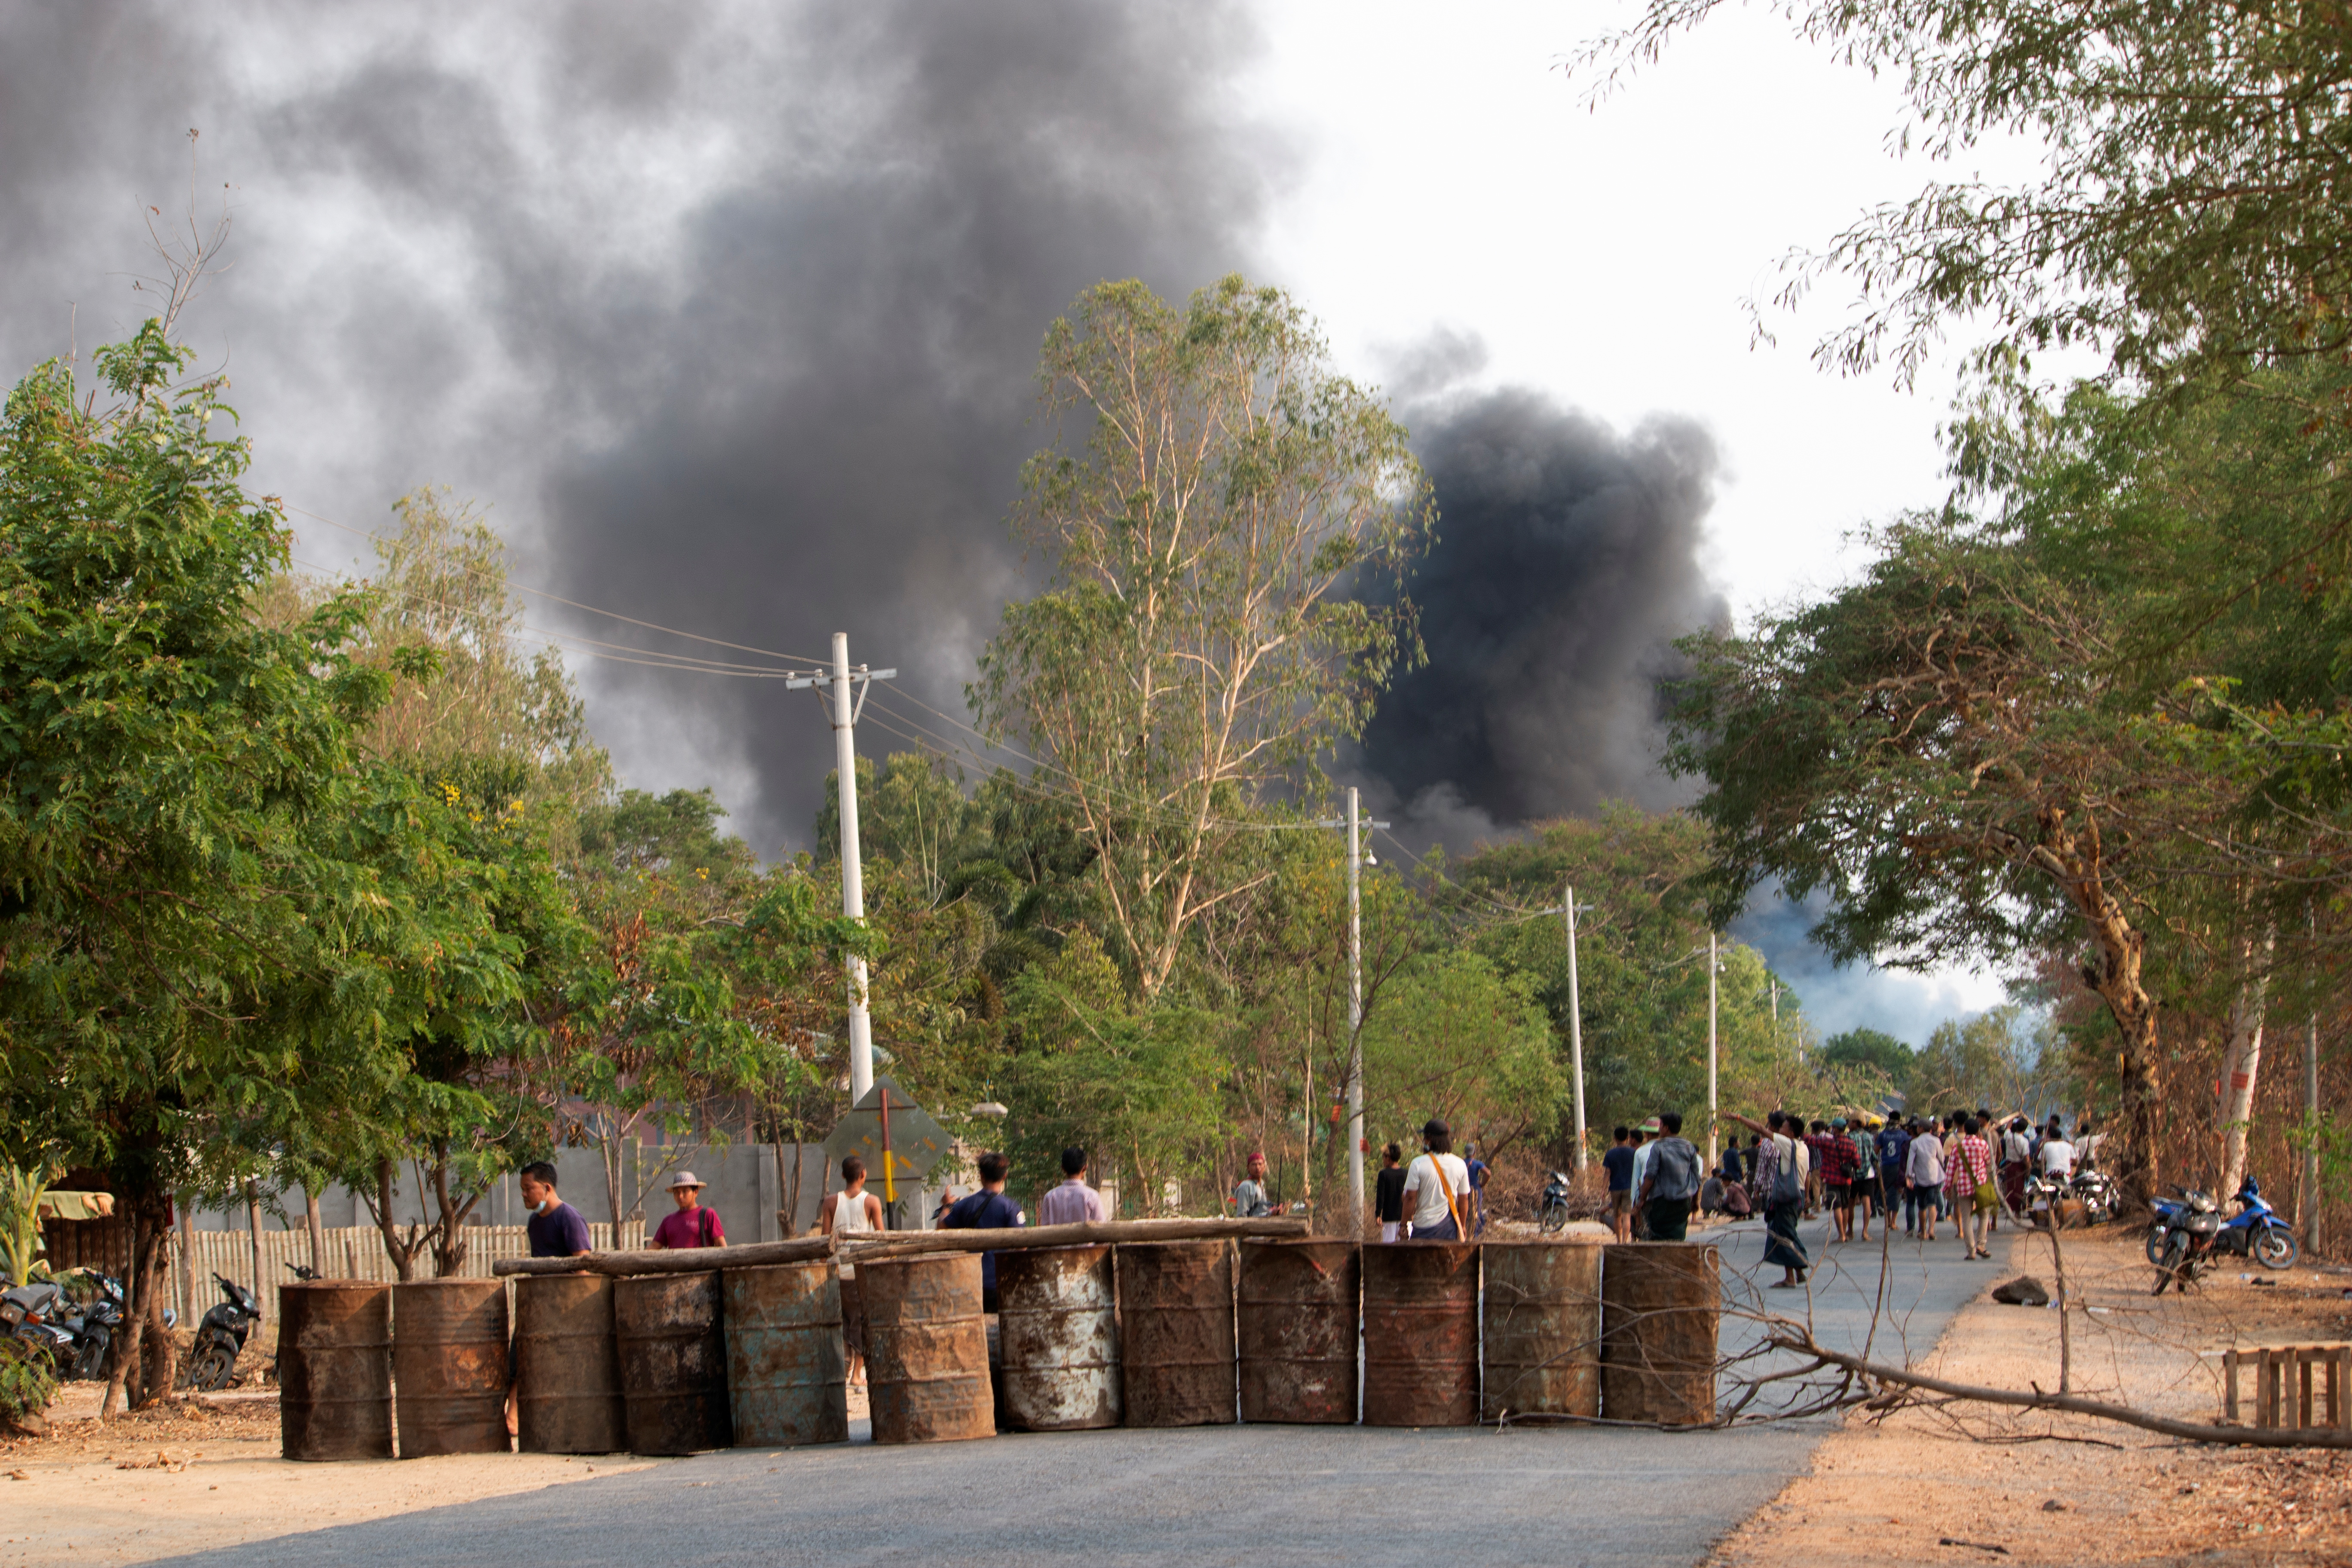 Demonstrators are seen before a clash with security forces in Taze, Sagaing Region, Myanmar April 7, 2021, in this image obtained by Reuters. Photo obtained by REUTERS.